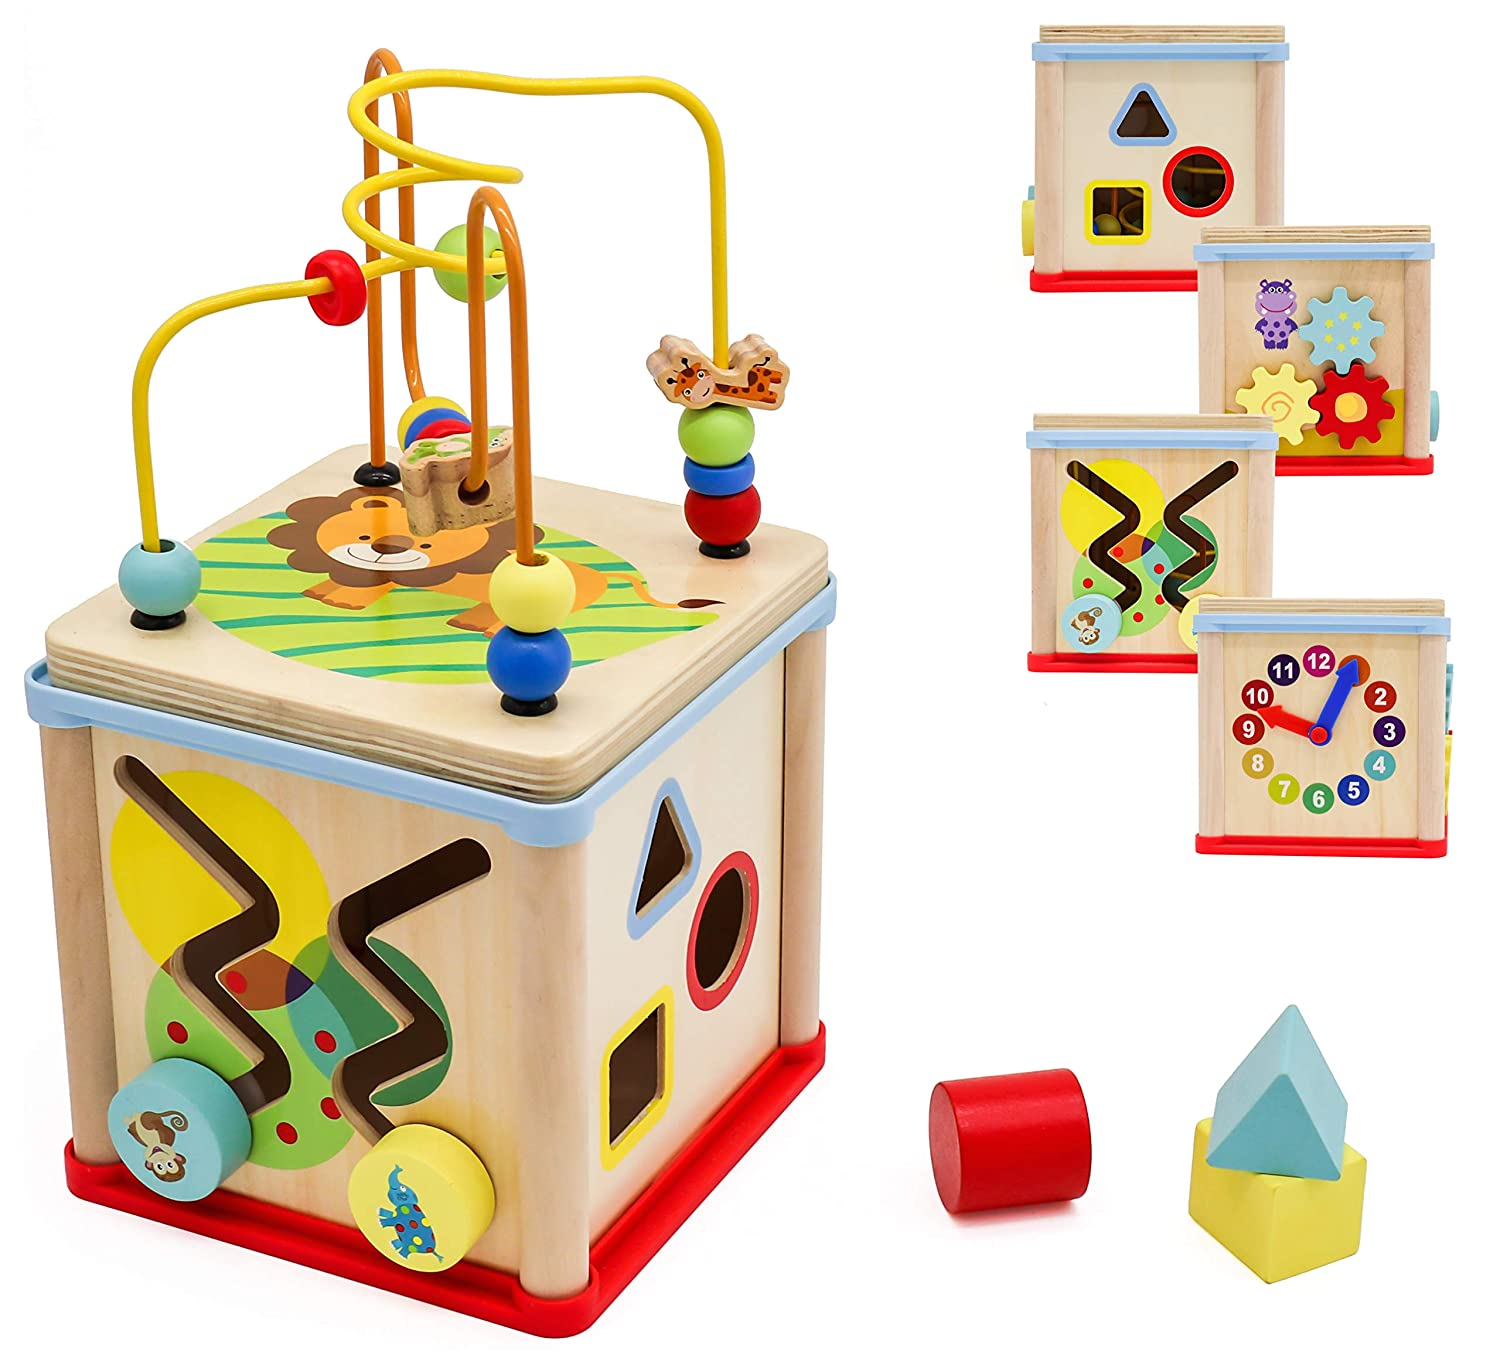 Pidoko Kids Wooden Activity Cube for Toddlers - Fun Learning Toy Gifts for Boys and Girls 1 Year Old and Up